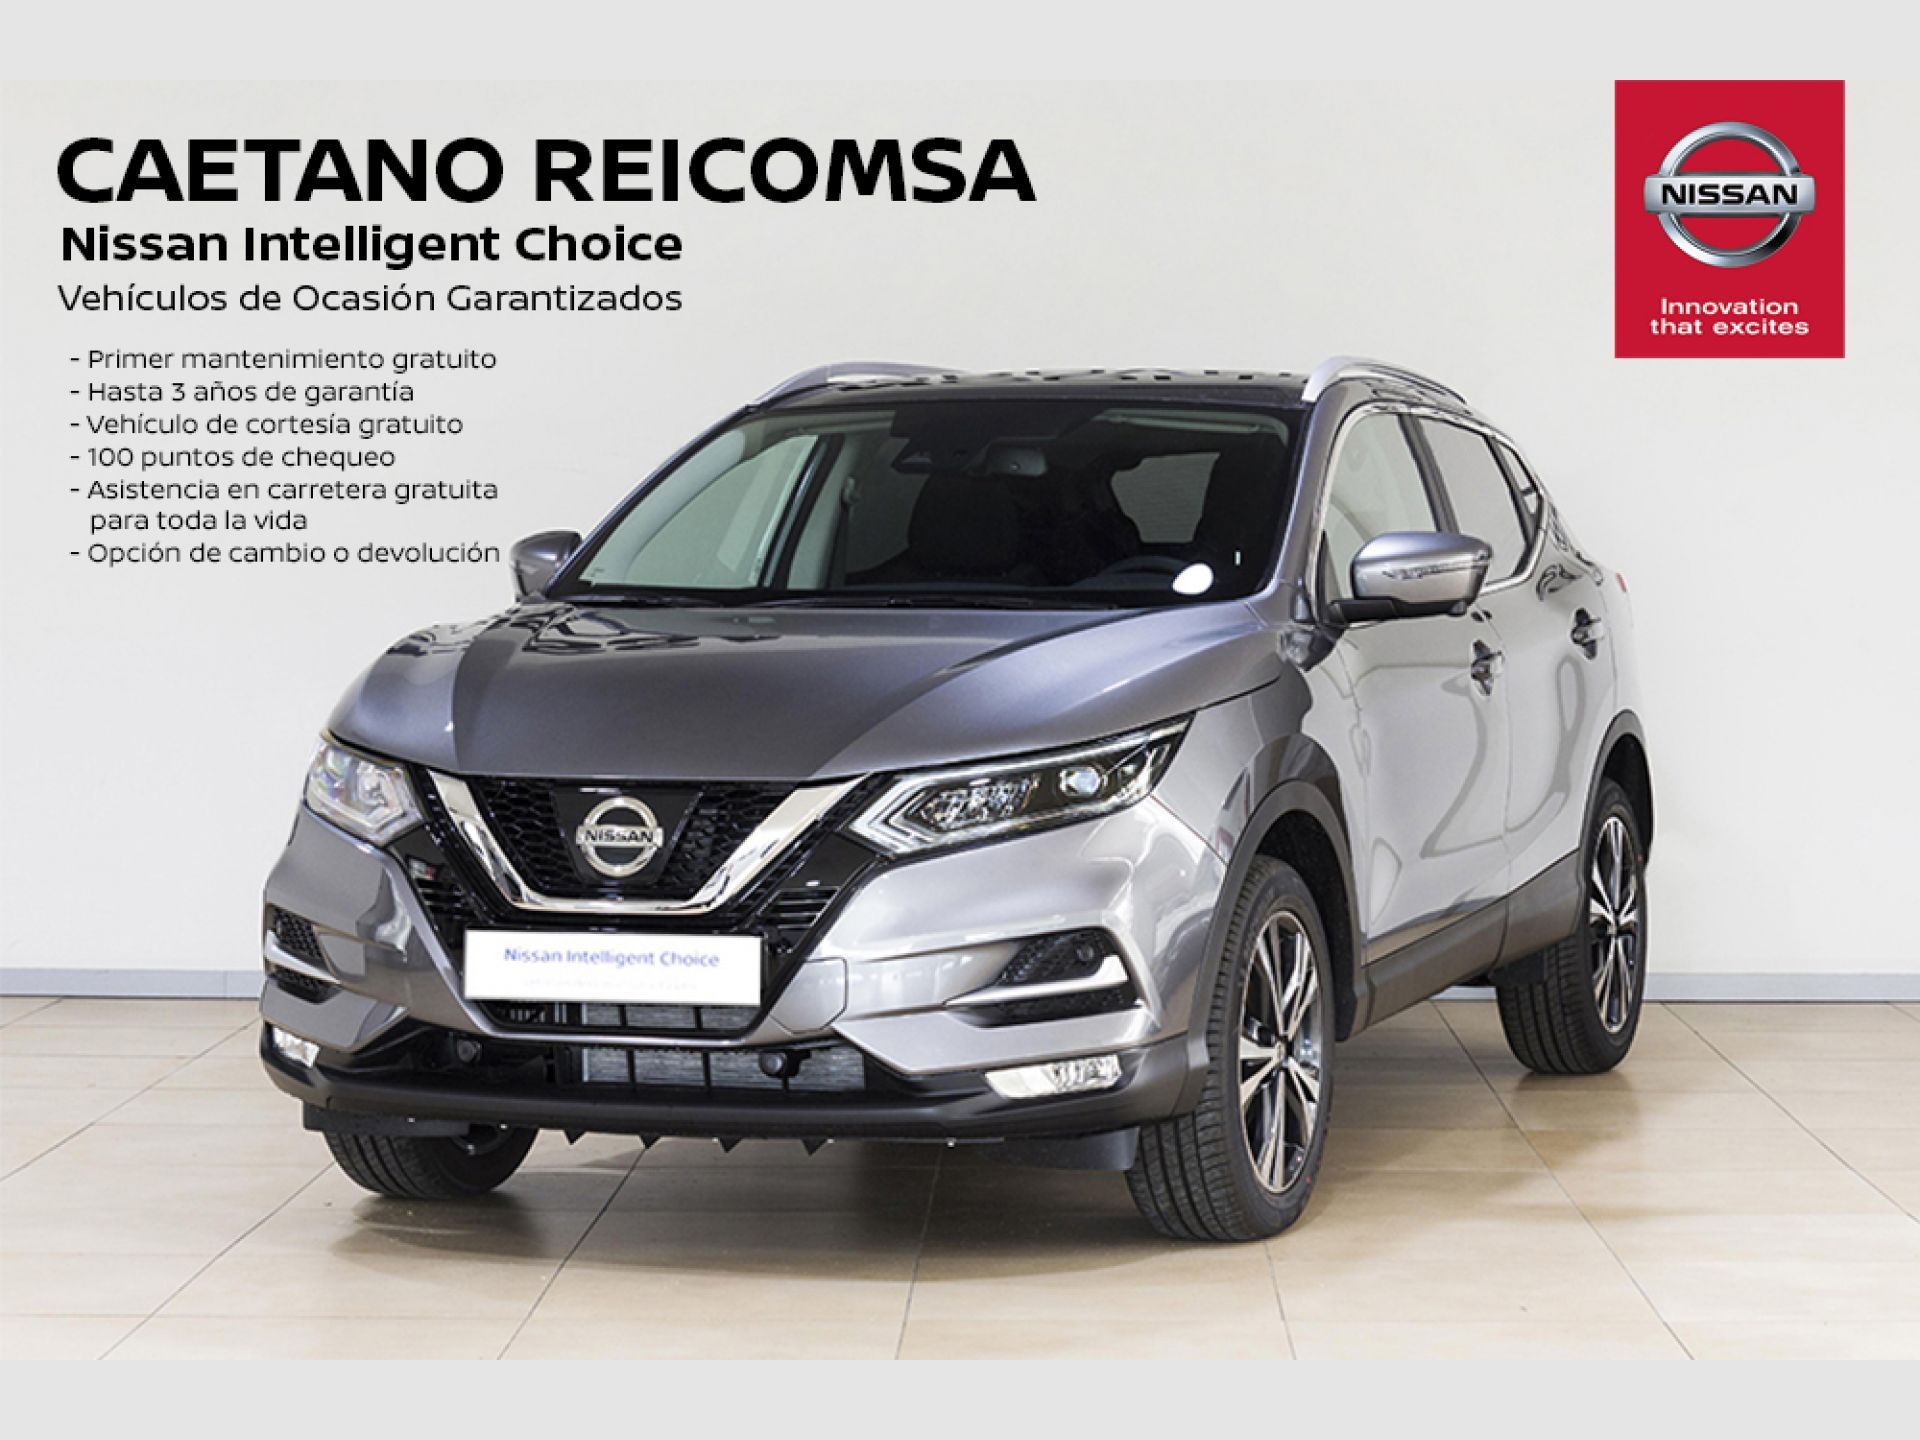 Nissan Qashqai dCi 85 kW (115 CV) E6D DCT N-CONNECTA + TECHO/BARRAS + LED segunda mano Madrid